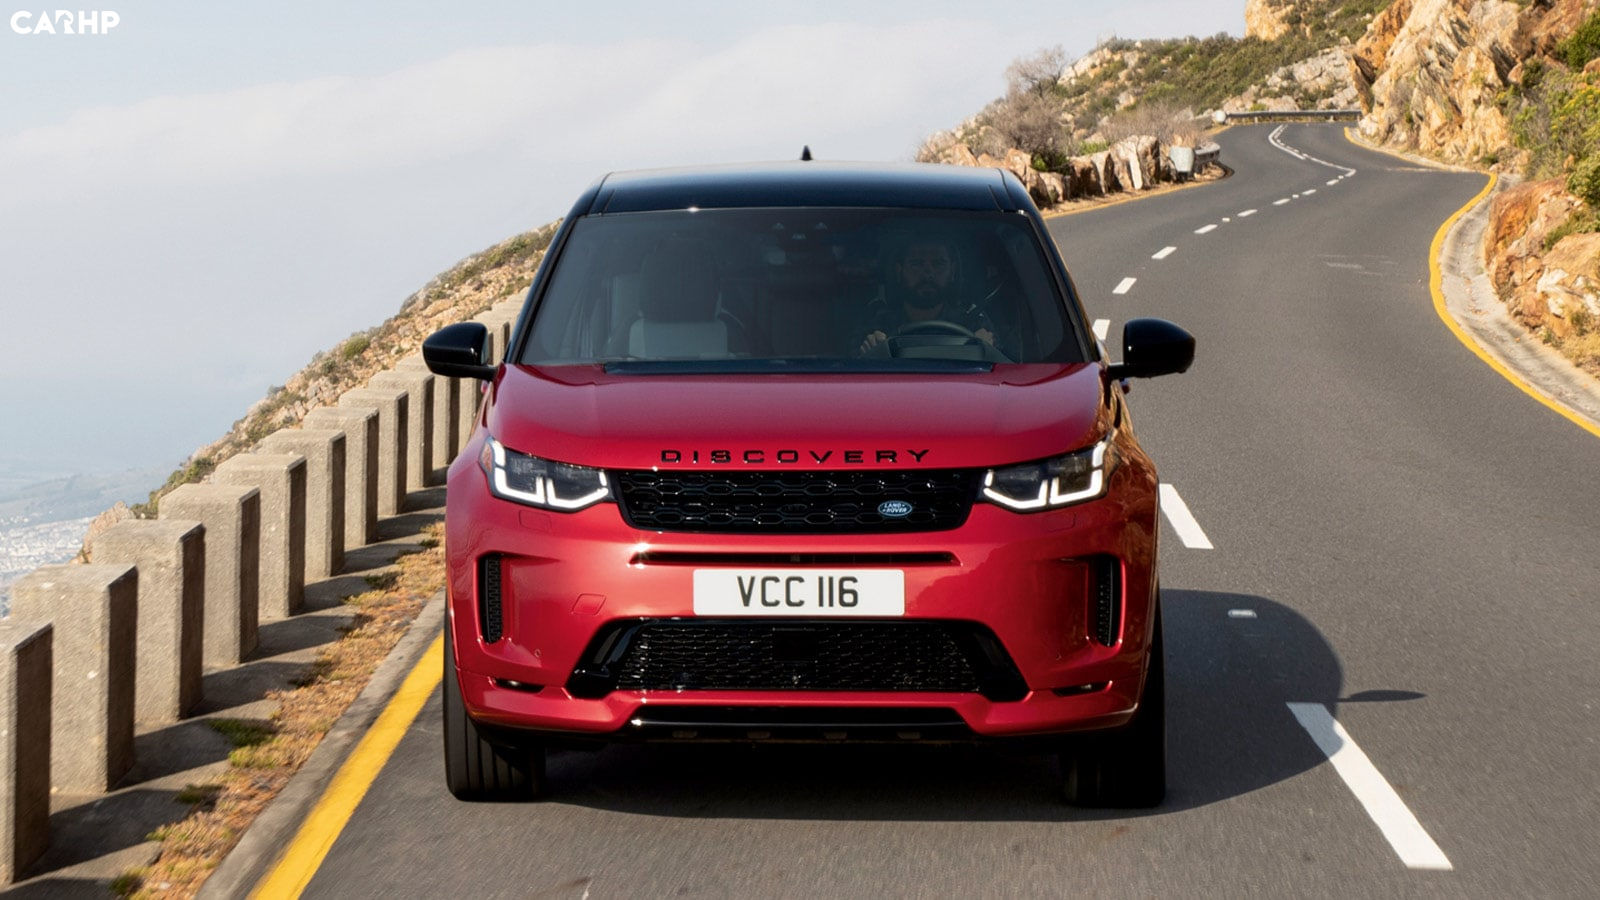 2021 Land Rover Discovery Sport SUV exterior image